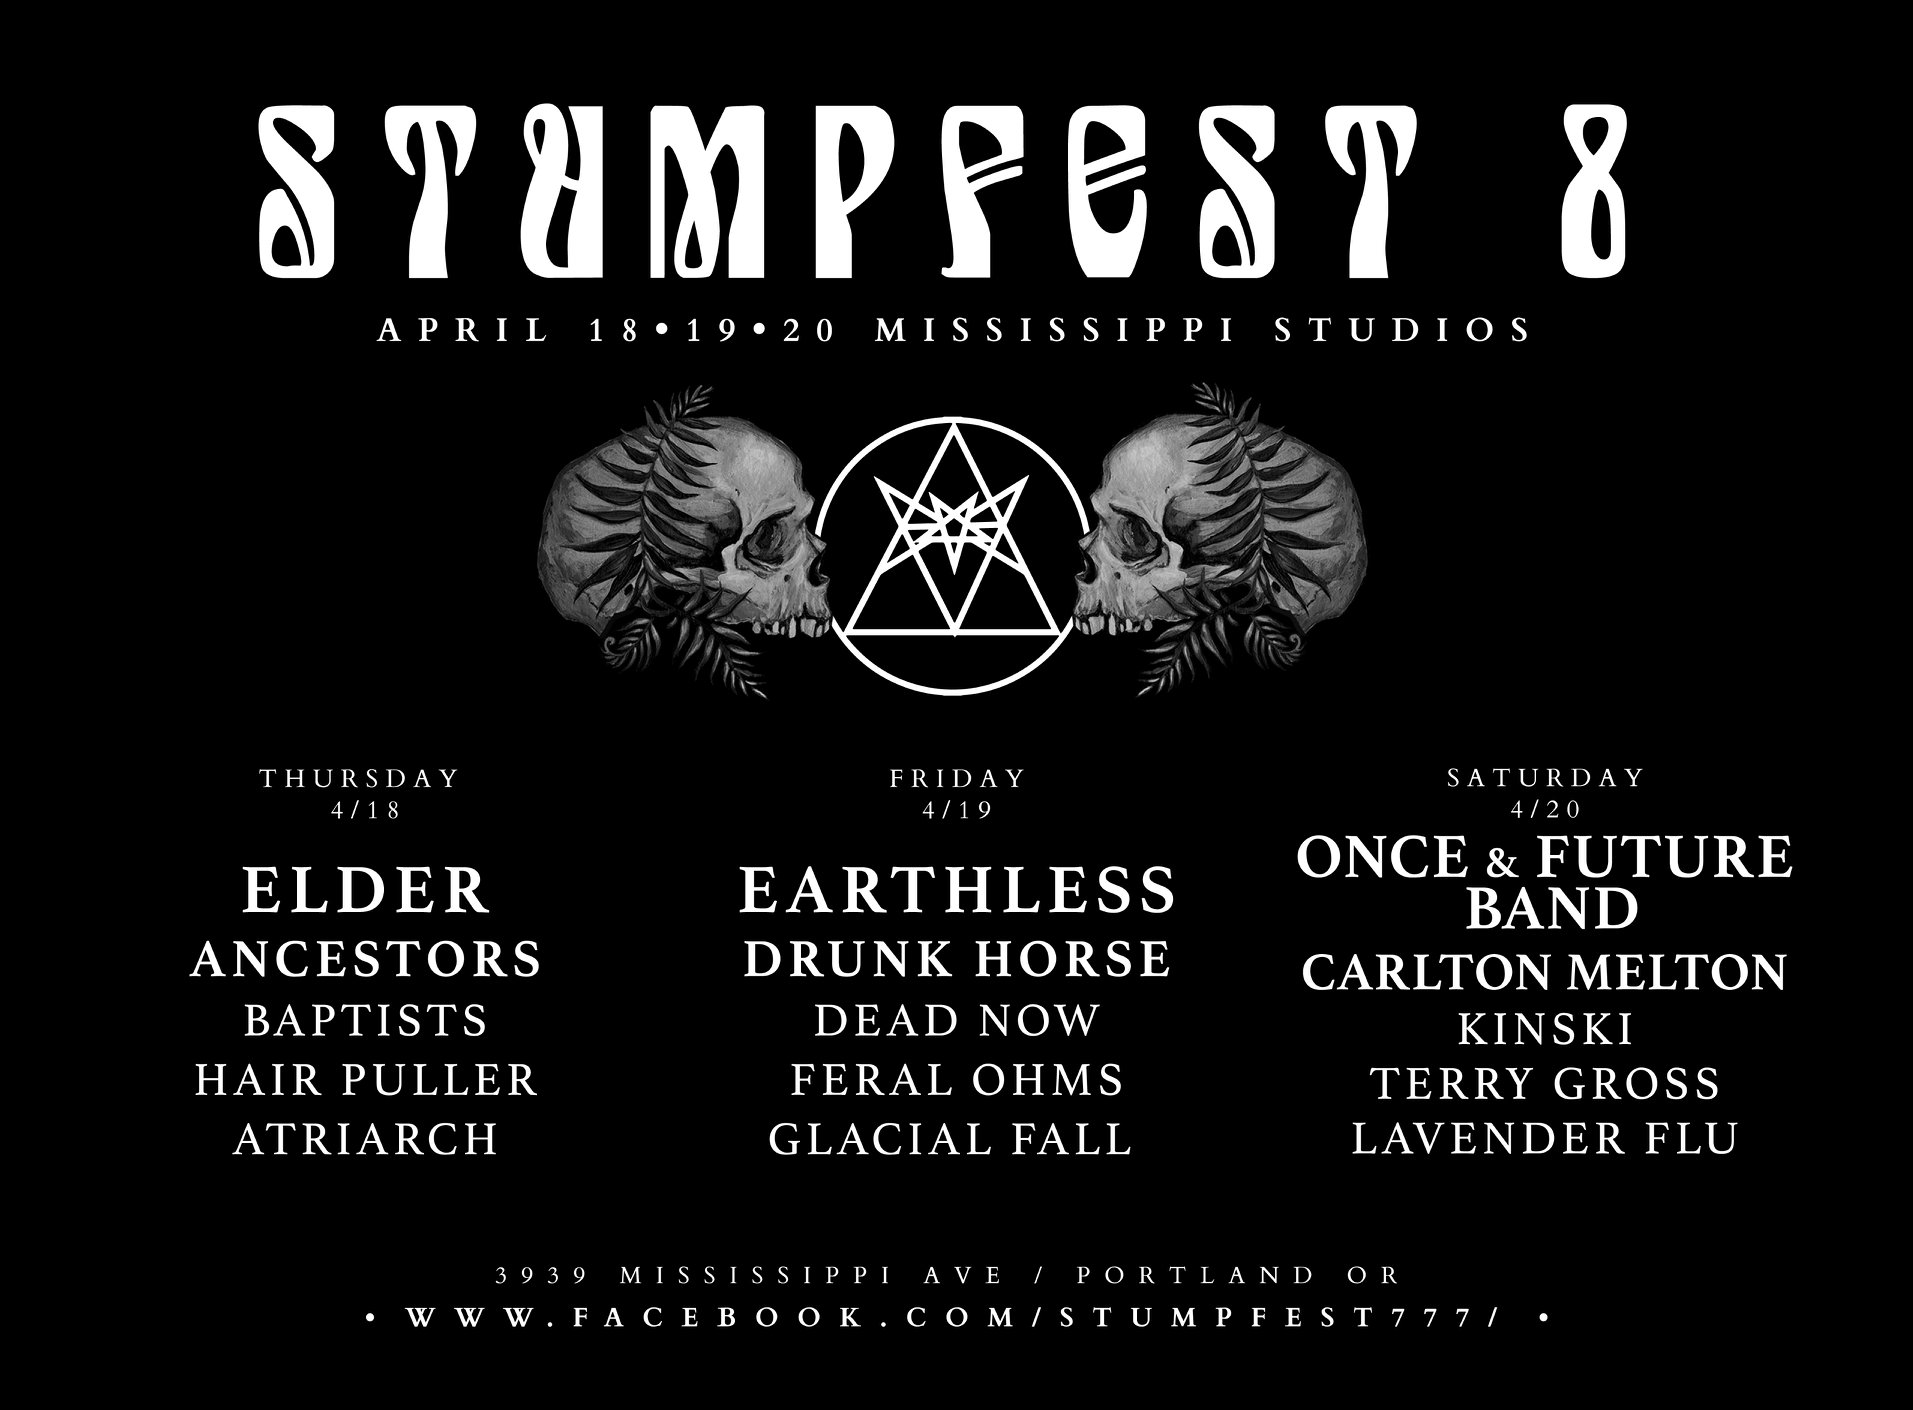 Stumpfest-2019-Flyer.jpg